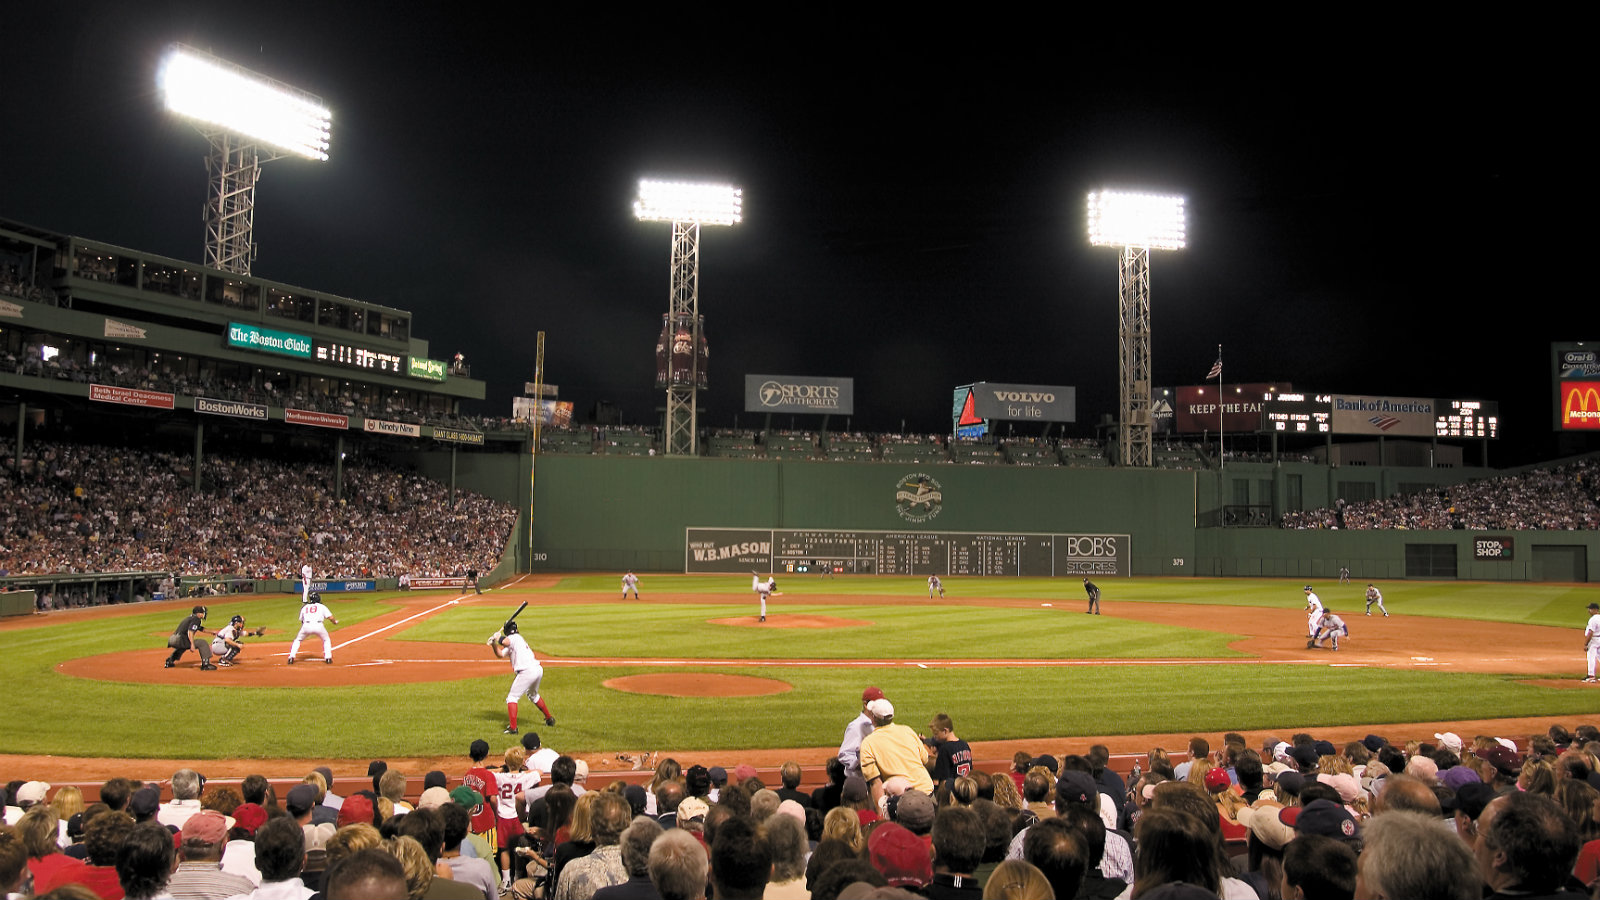 Things to do in Boston - Fenway Park